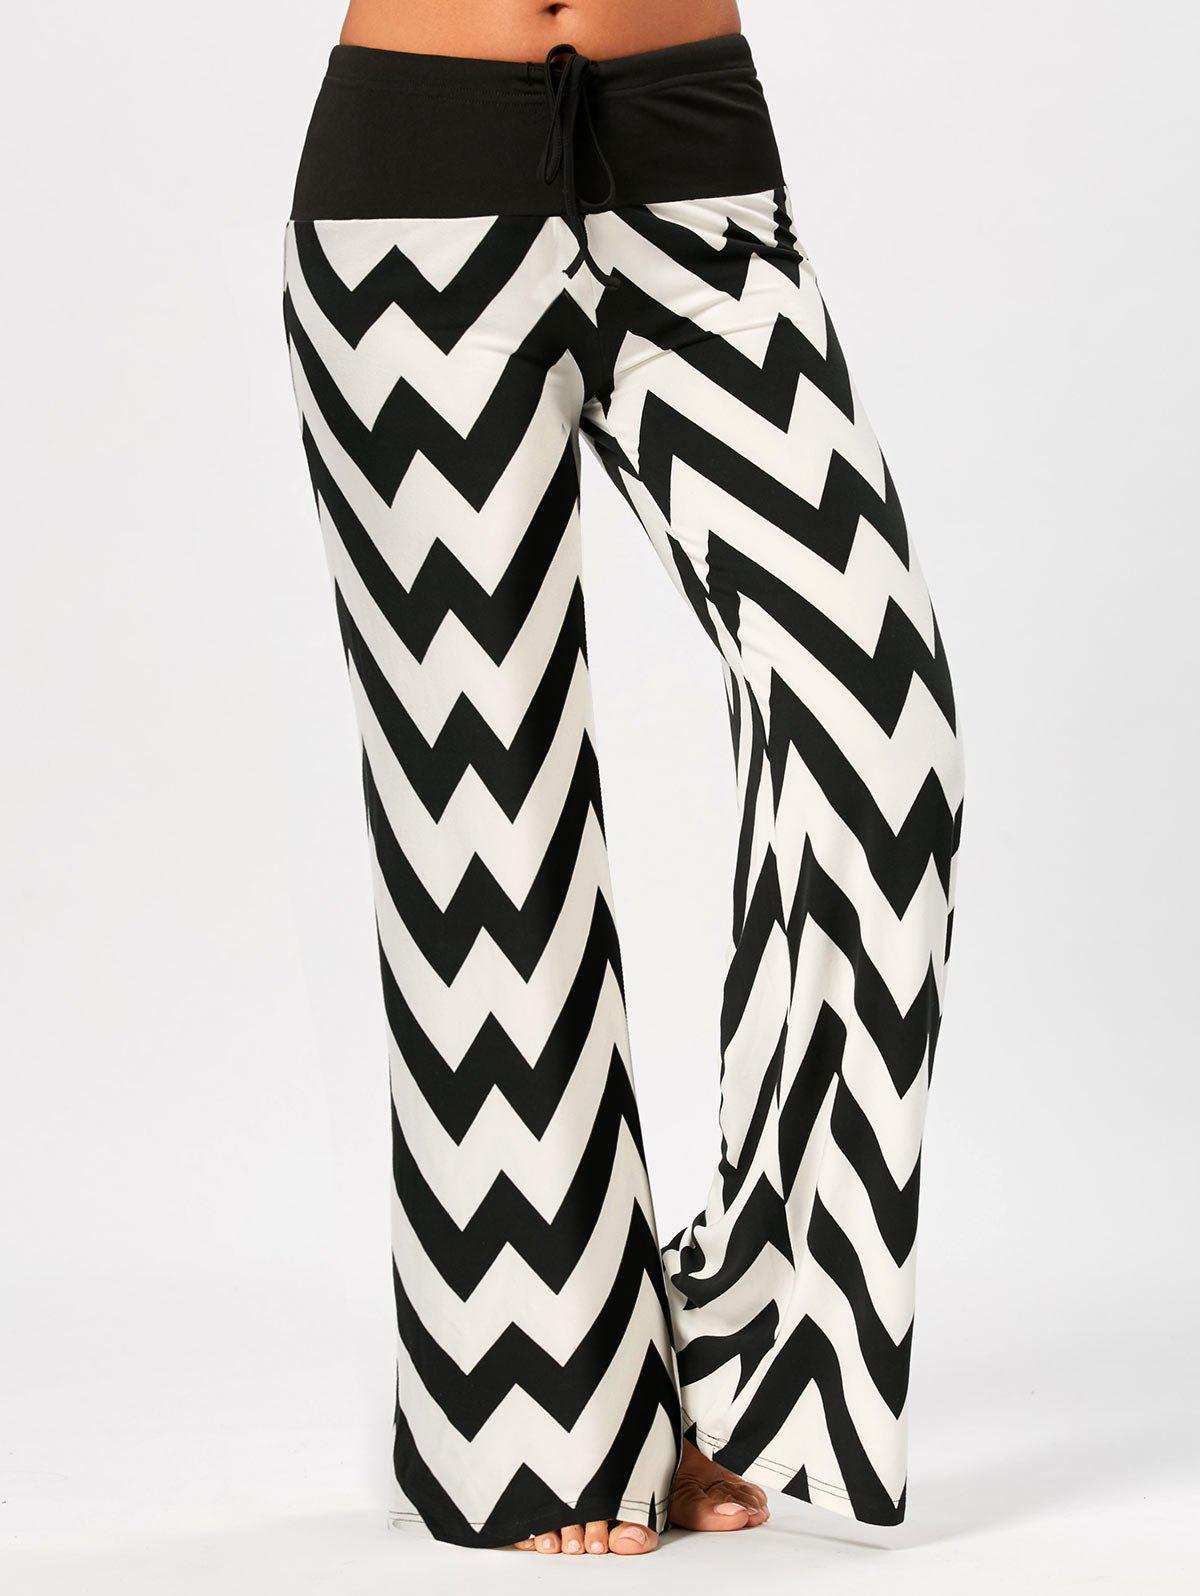 Zigzag Print Drawstring Palazzo PantsWOMEN<br><br>Size: M; Color: WHITE AND BLACK; Style: Fashion; Length: Normal; Material: Polyester,Spandex; Fit Type: Regular; Waist Type: Mid; Closure Type: Drawstring; Front Style: Flat; Pattern Type: Chevron/Zig Zag,Print; Pant Style: Wide Leg Pants; Elasticity: Micro-elastic; With Belt: No; Weight: 0.3600kg; Package Contents: 1 x Pants;